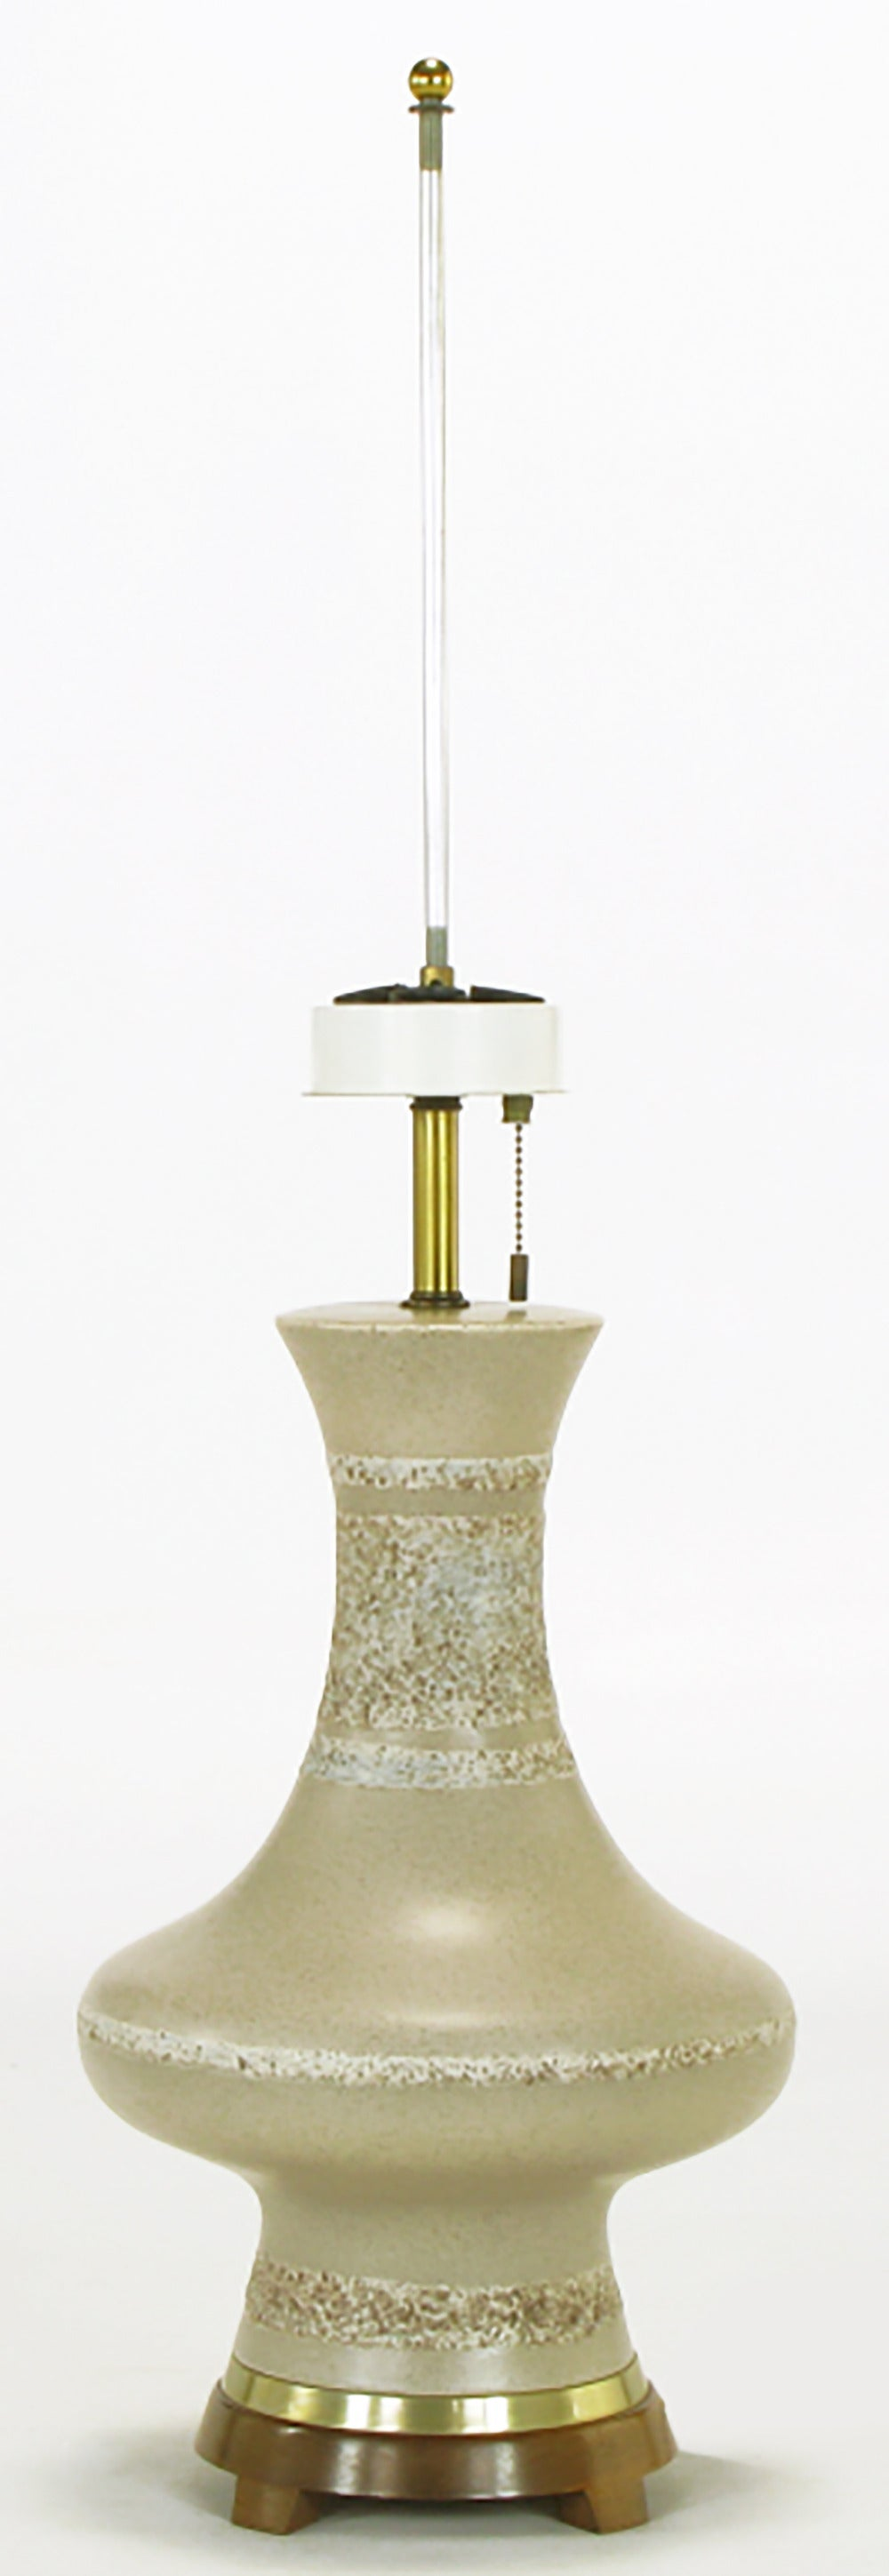 Modernist urn form table lamp with a heathered glaze pottery body, footed wood base and brass spacer. Brass stem with a three socket up light mechanism that was a Lightolier hallmark. Possibly a late Gerald Thurston or early David Cressey design.